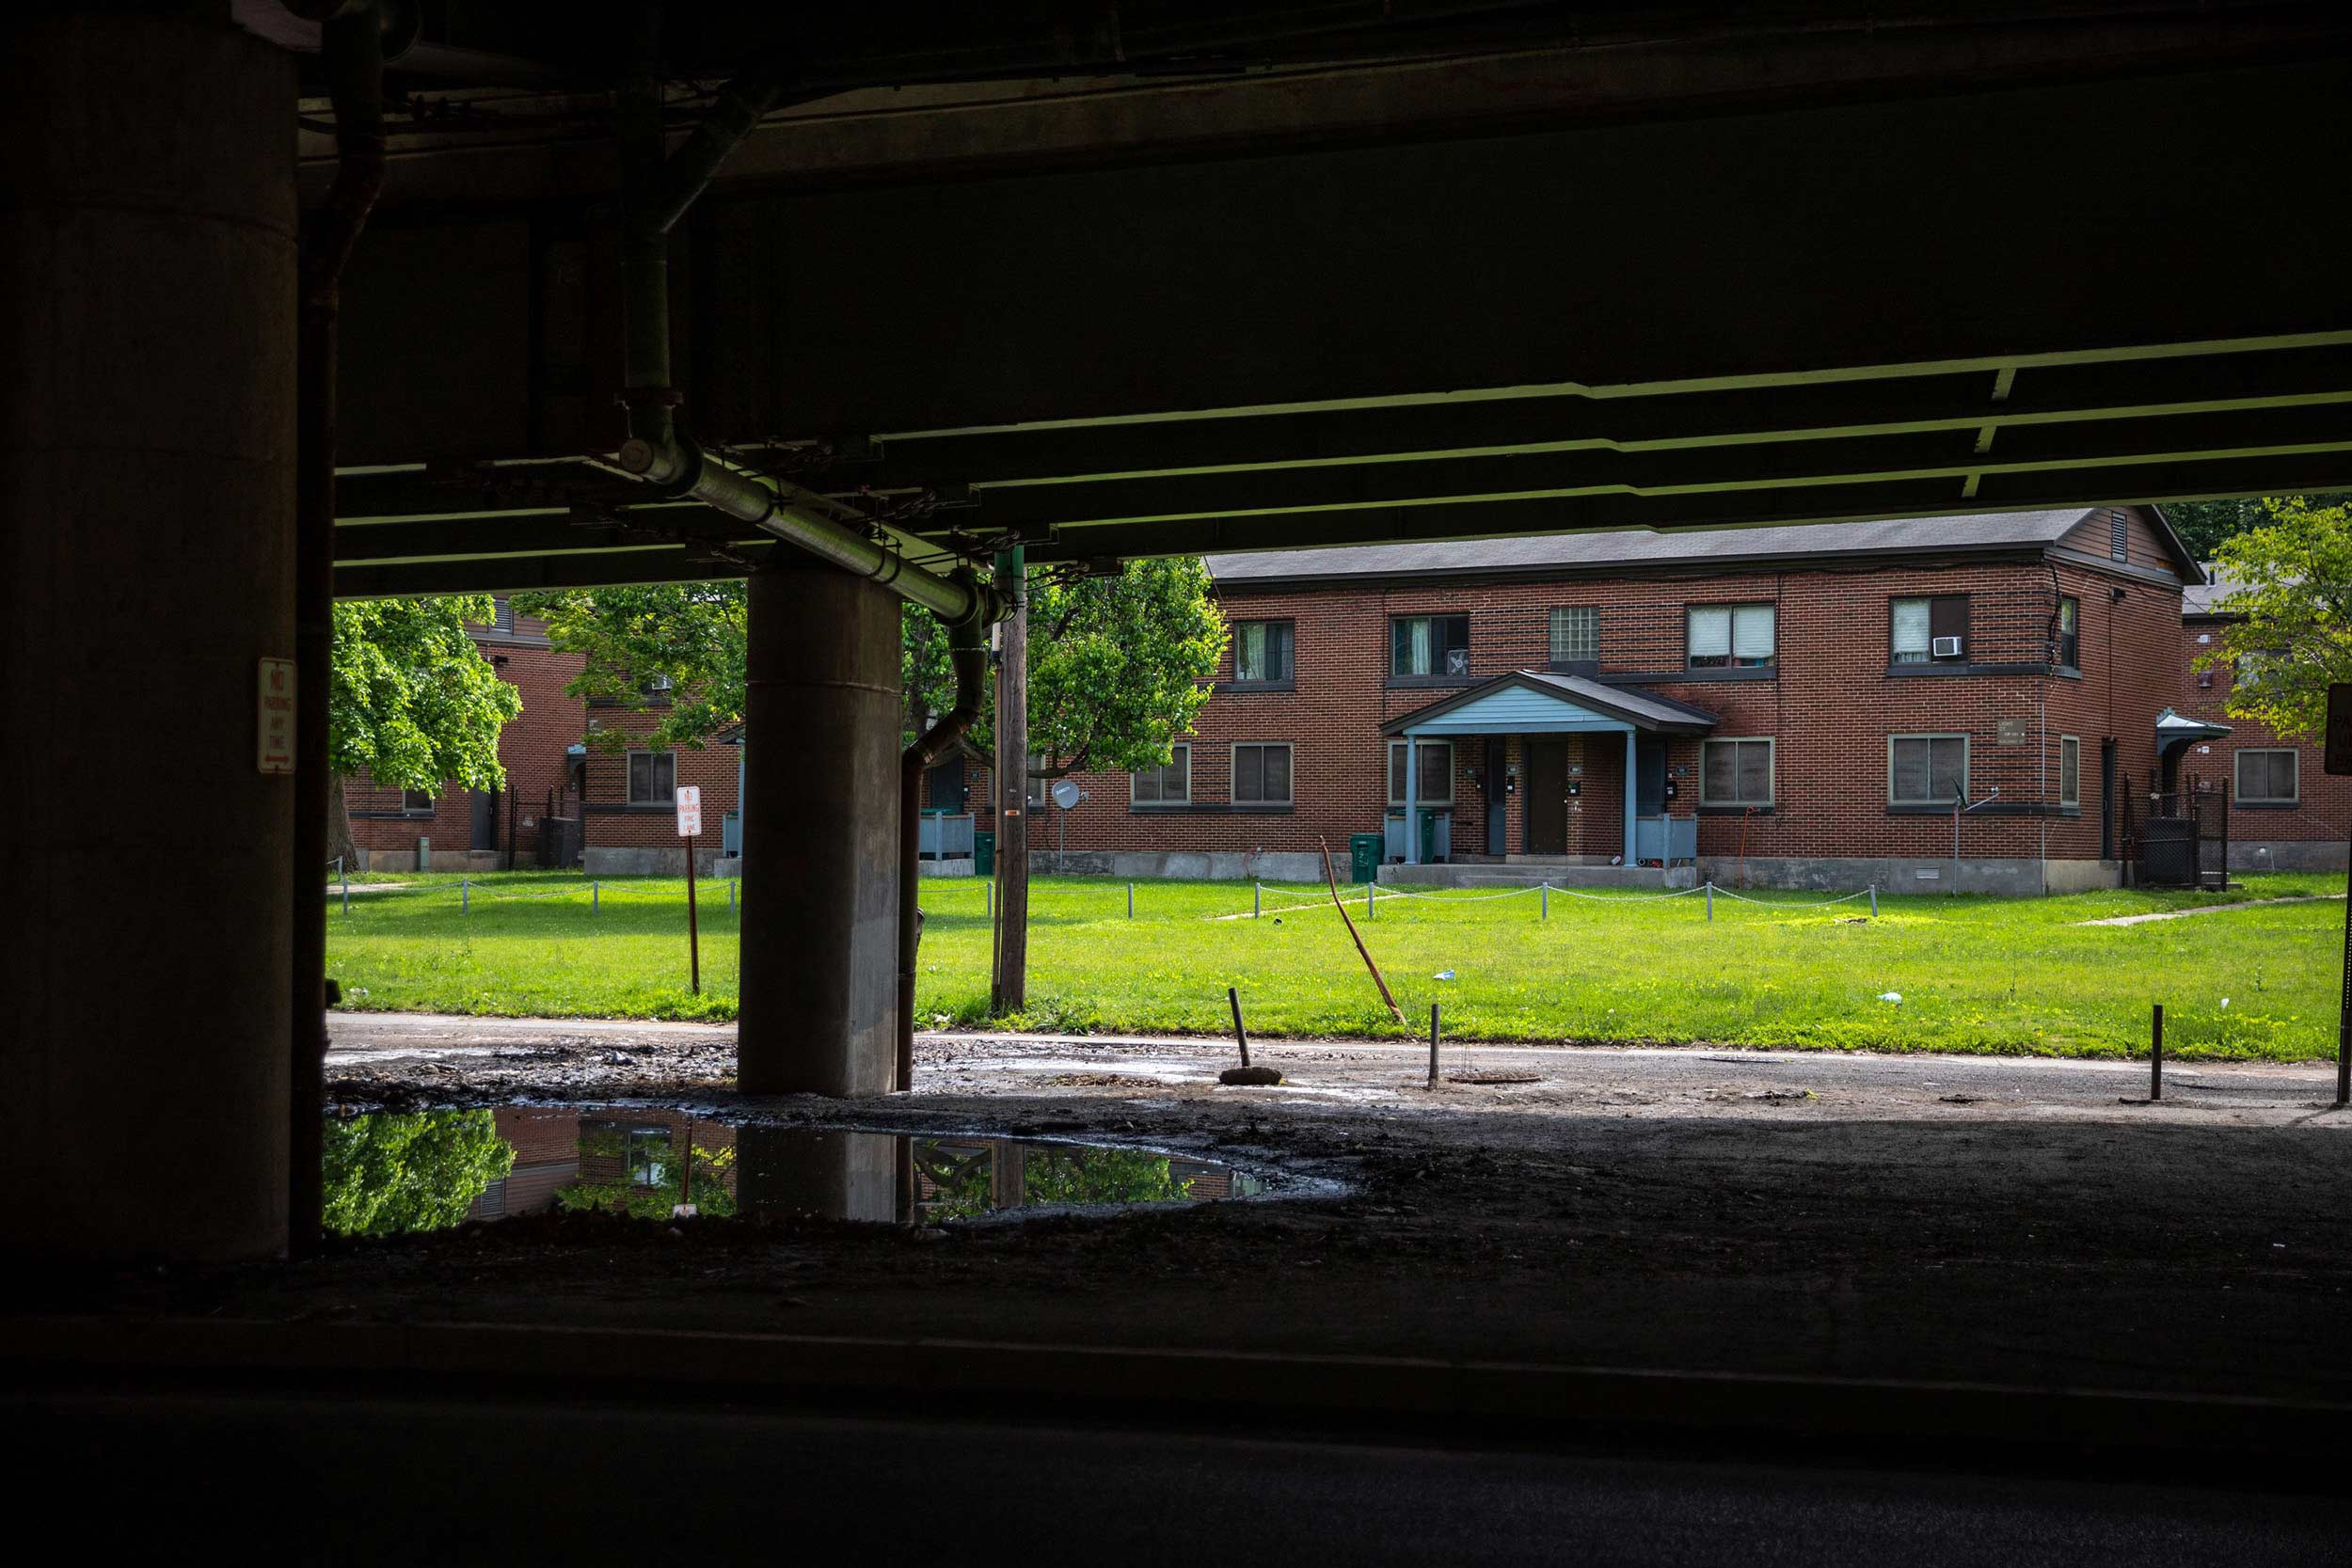 View from under the viaduct of the Pioneer Homes apartments that sit next to I-81 in Syracuse.